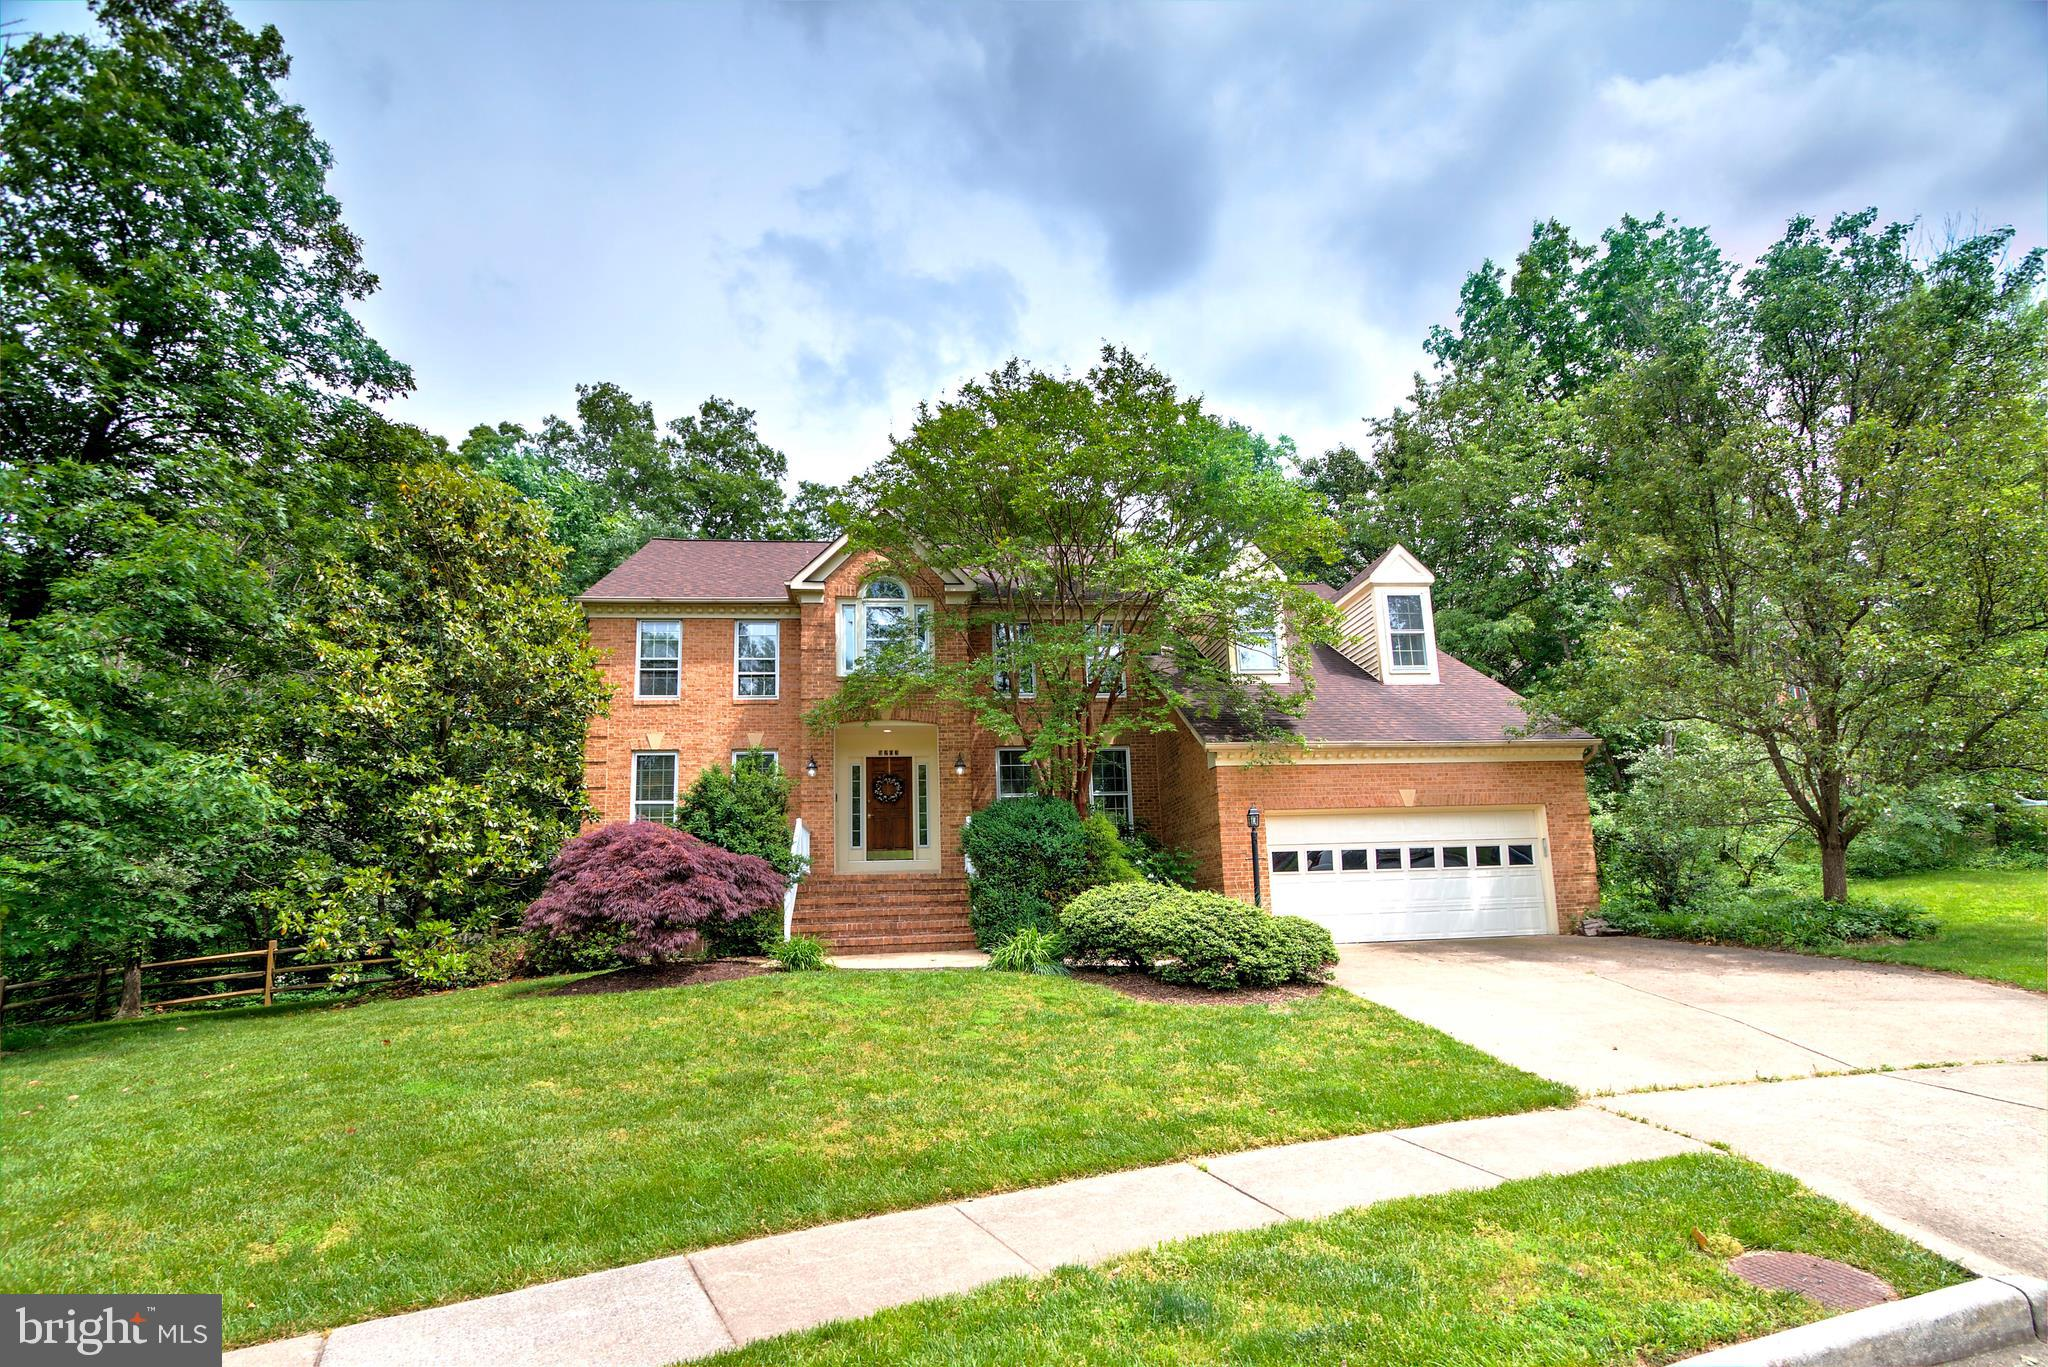 Fabulous McLean model with 4 bedrooms and 4.5 baths!  Gorgeous cul-de-sac lot backing to trees! Fabu